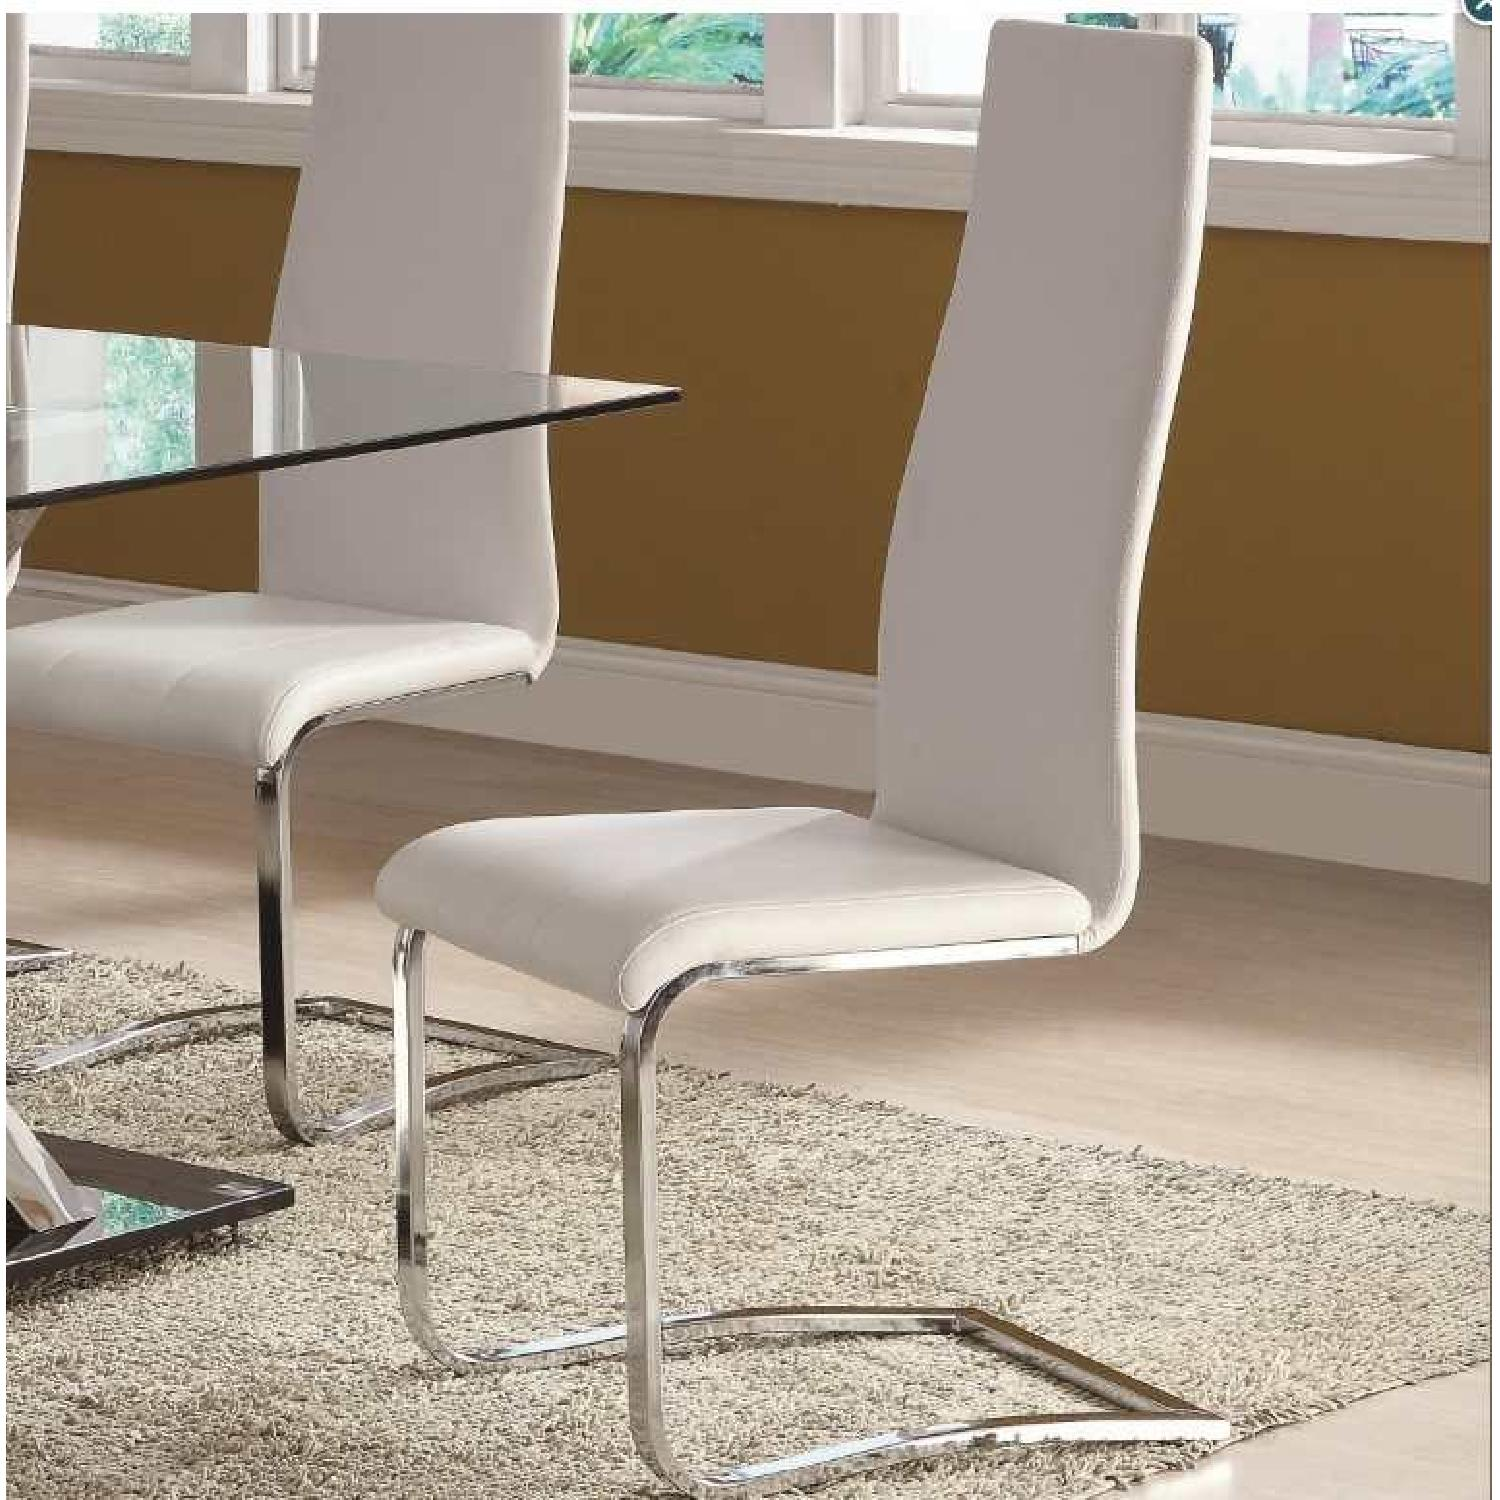 Modern White Dining Chairs w/ Solid Metal Legs - image-2